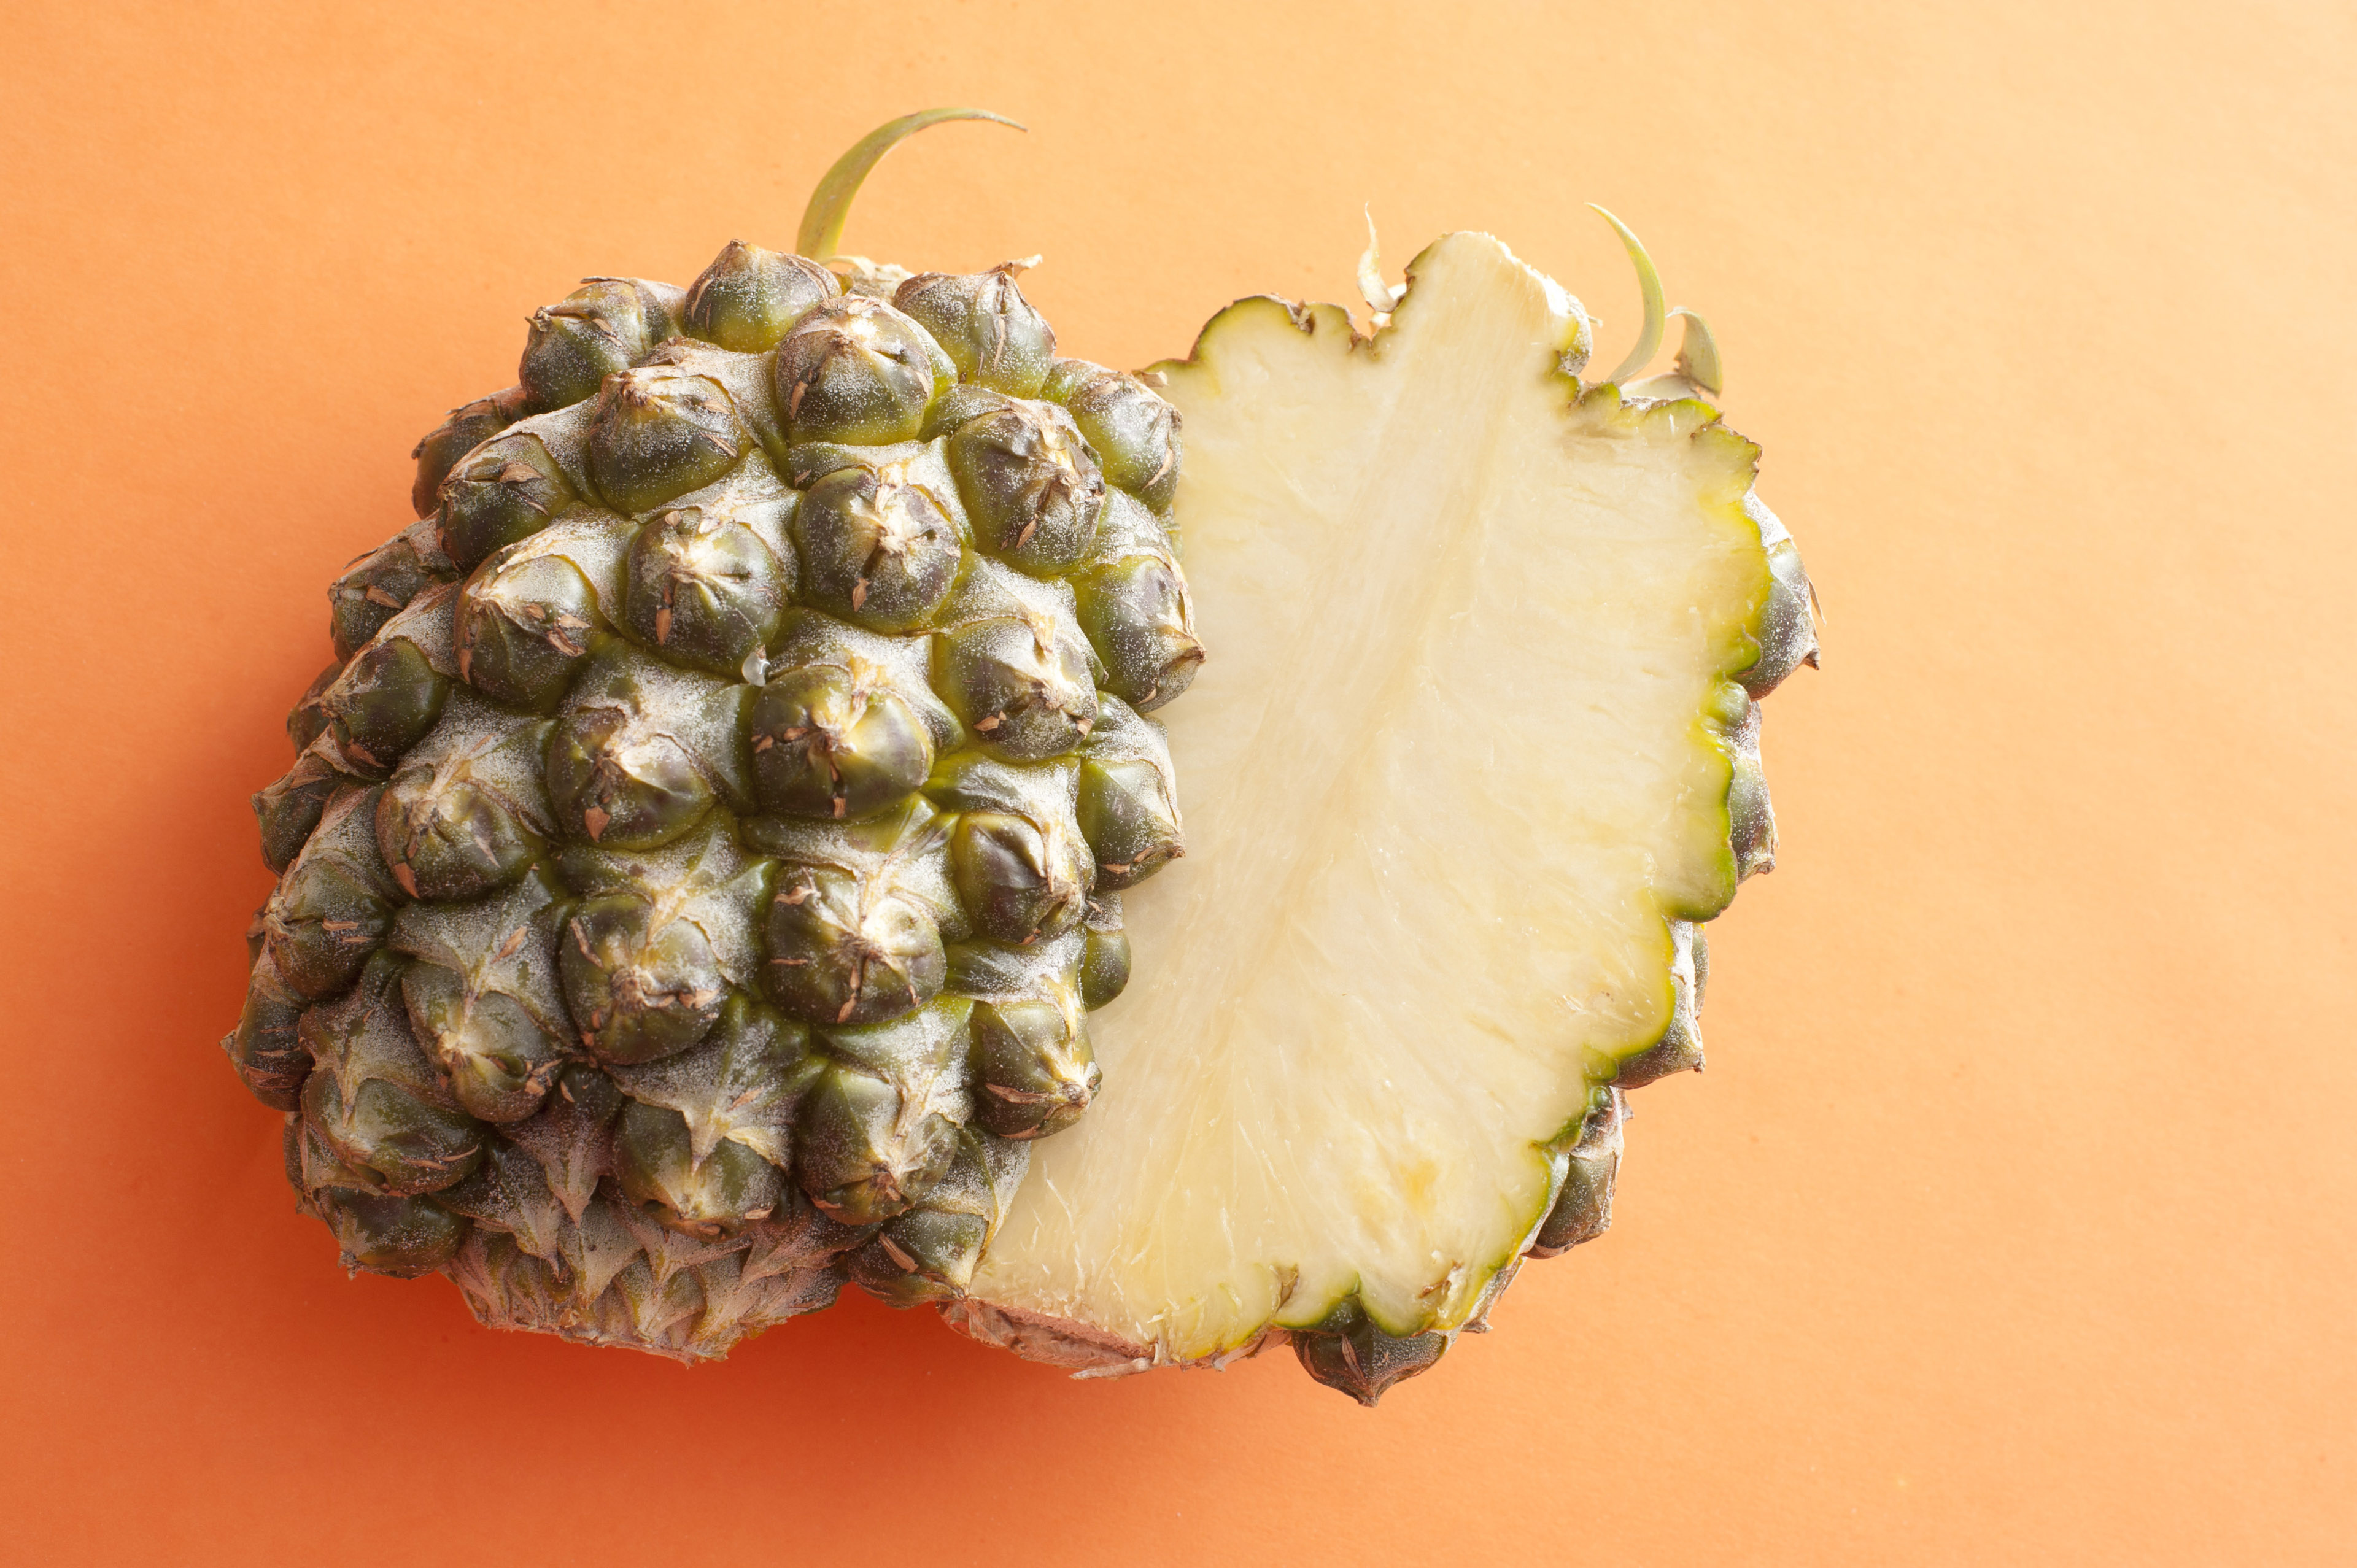 A fresh pineapple, sliced in half, isolated on a bright orange background.